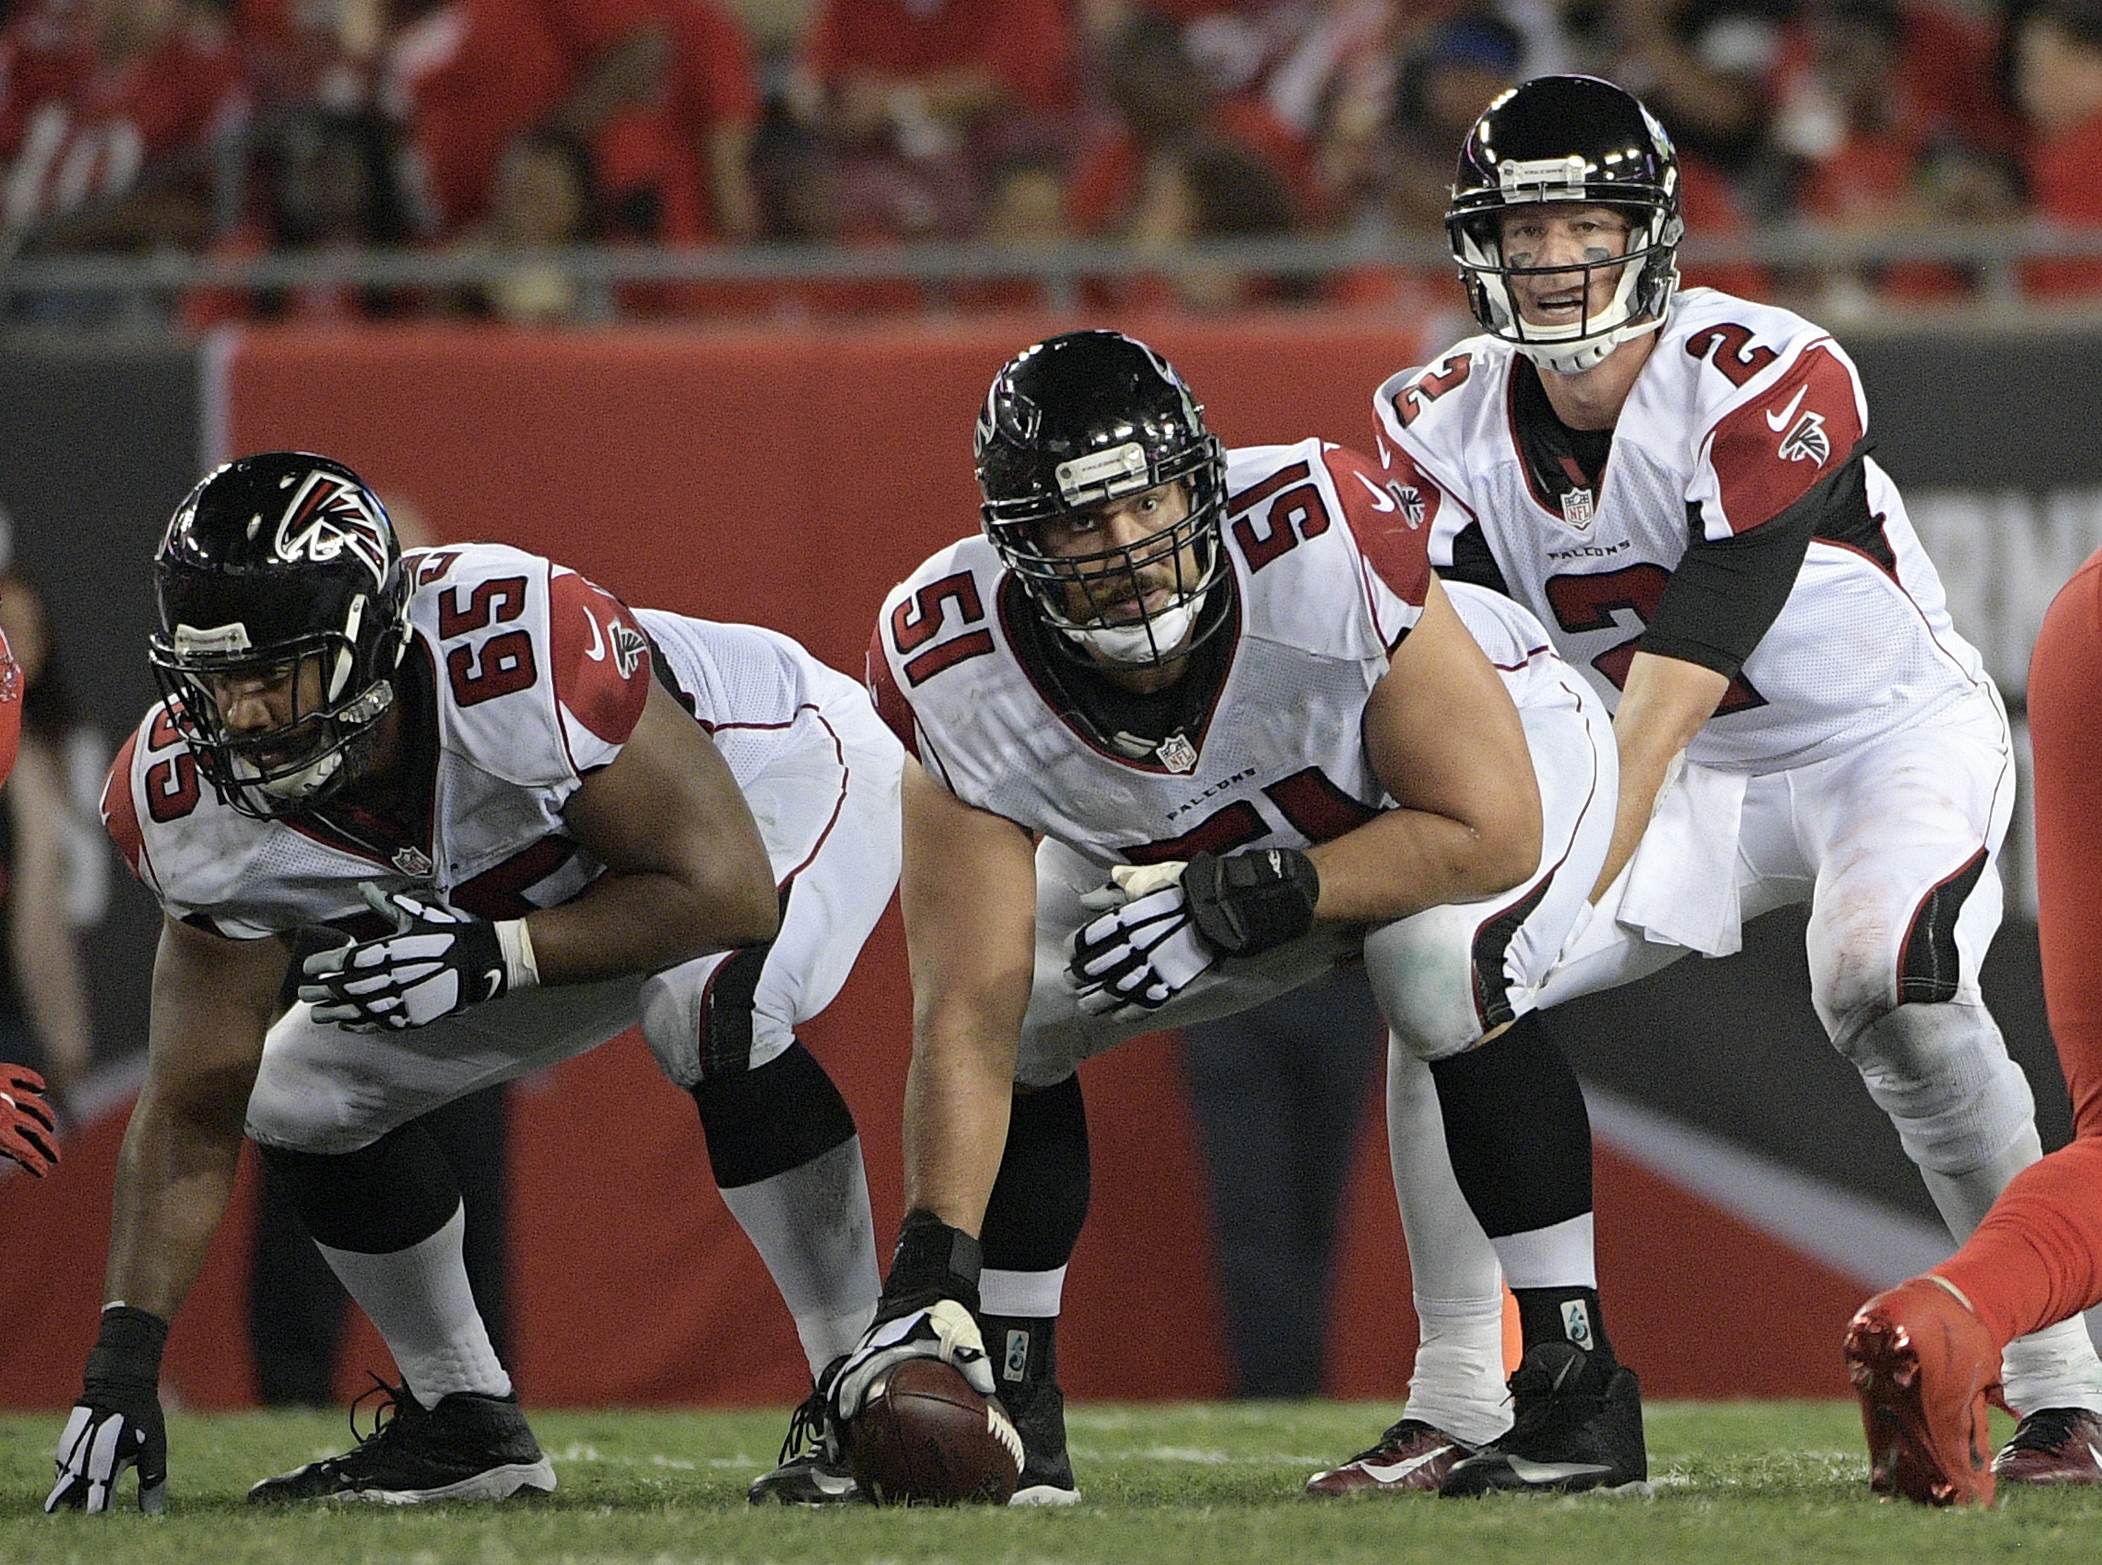 FILE - In this Nov. 3, 2016, file photo, Atlanta Falcons center Alex Mack (51) gets set to snap the ball to quarterback Matt Ryan (2)  during the second quarter of an NFL football game against the Tampa Bay Buccaneers in Tampa, Fla. The Falcons are deligh